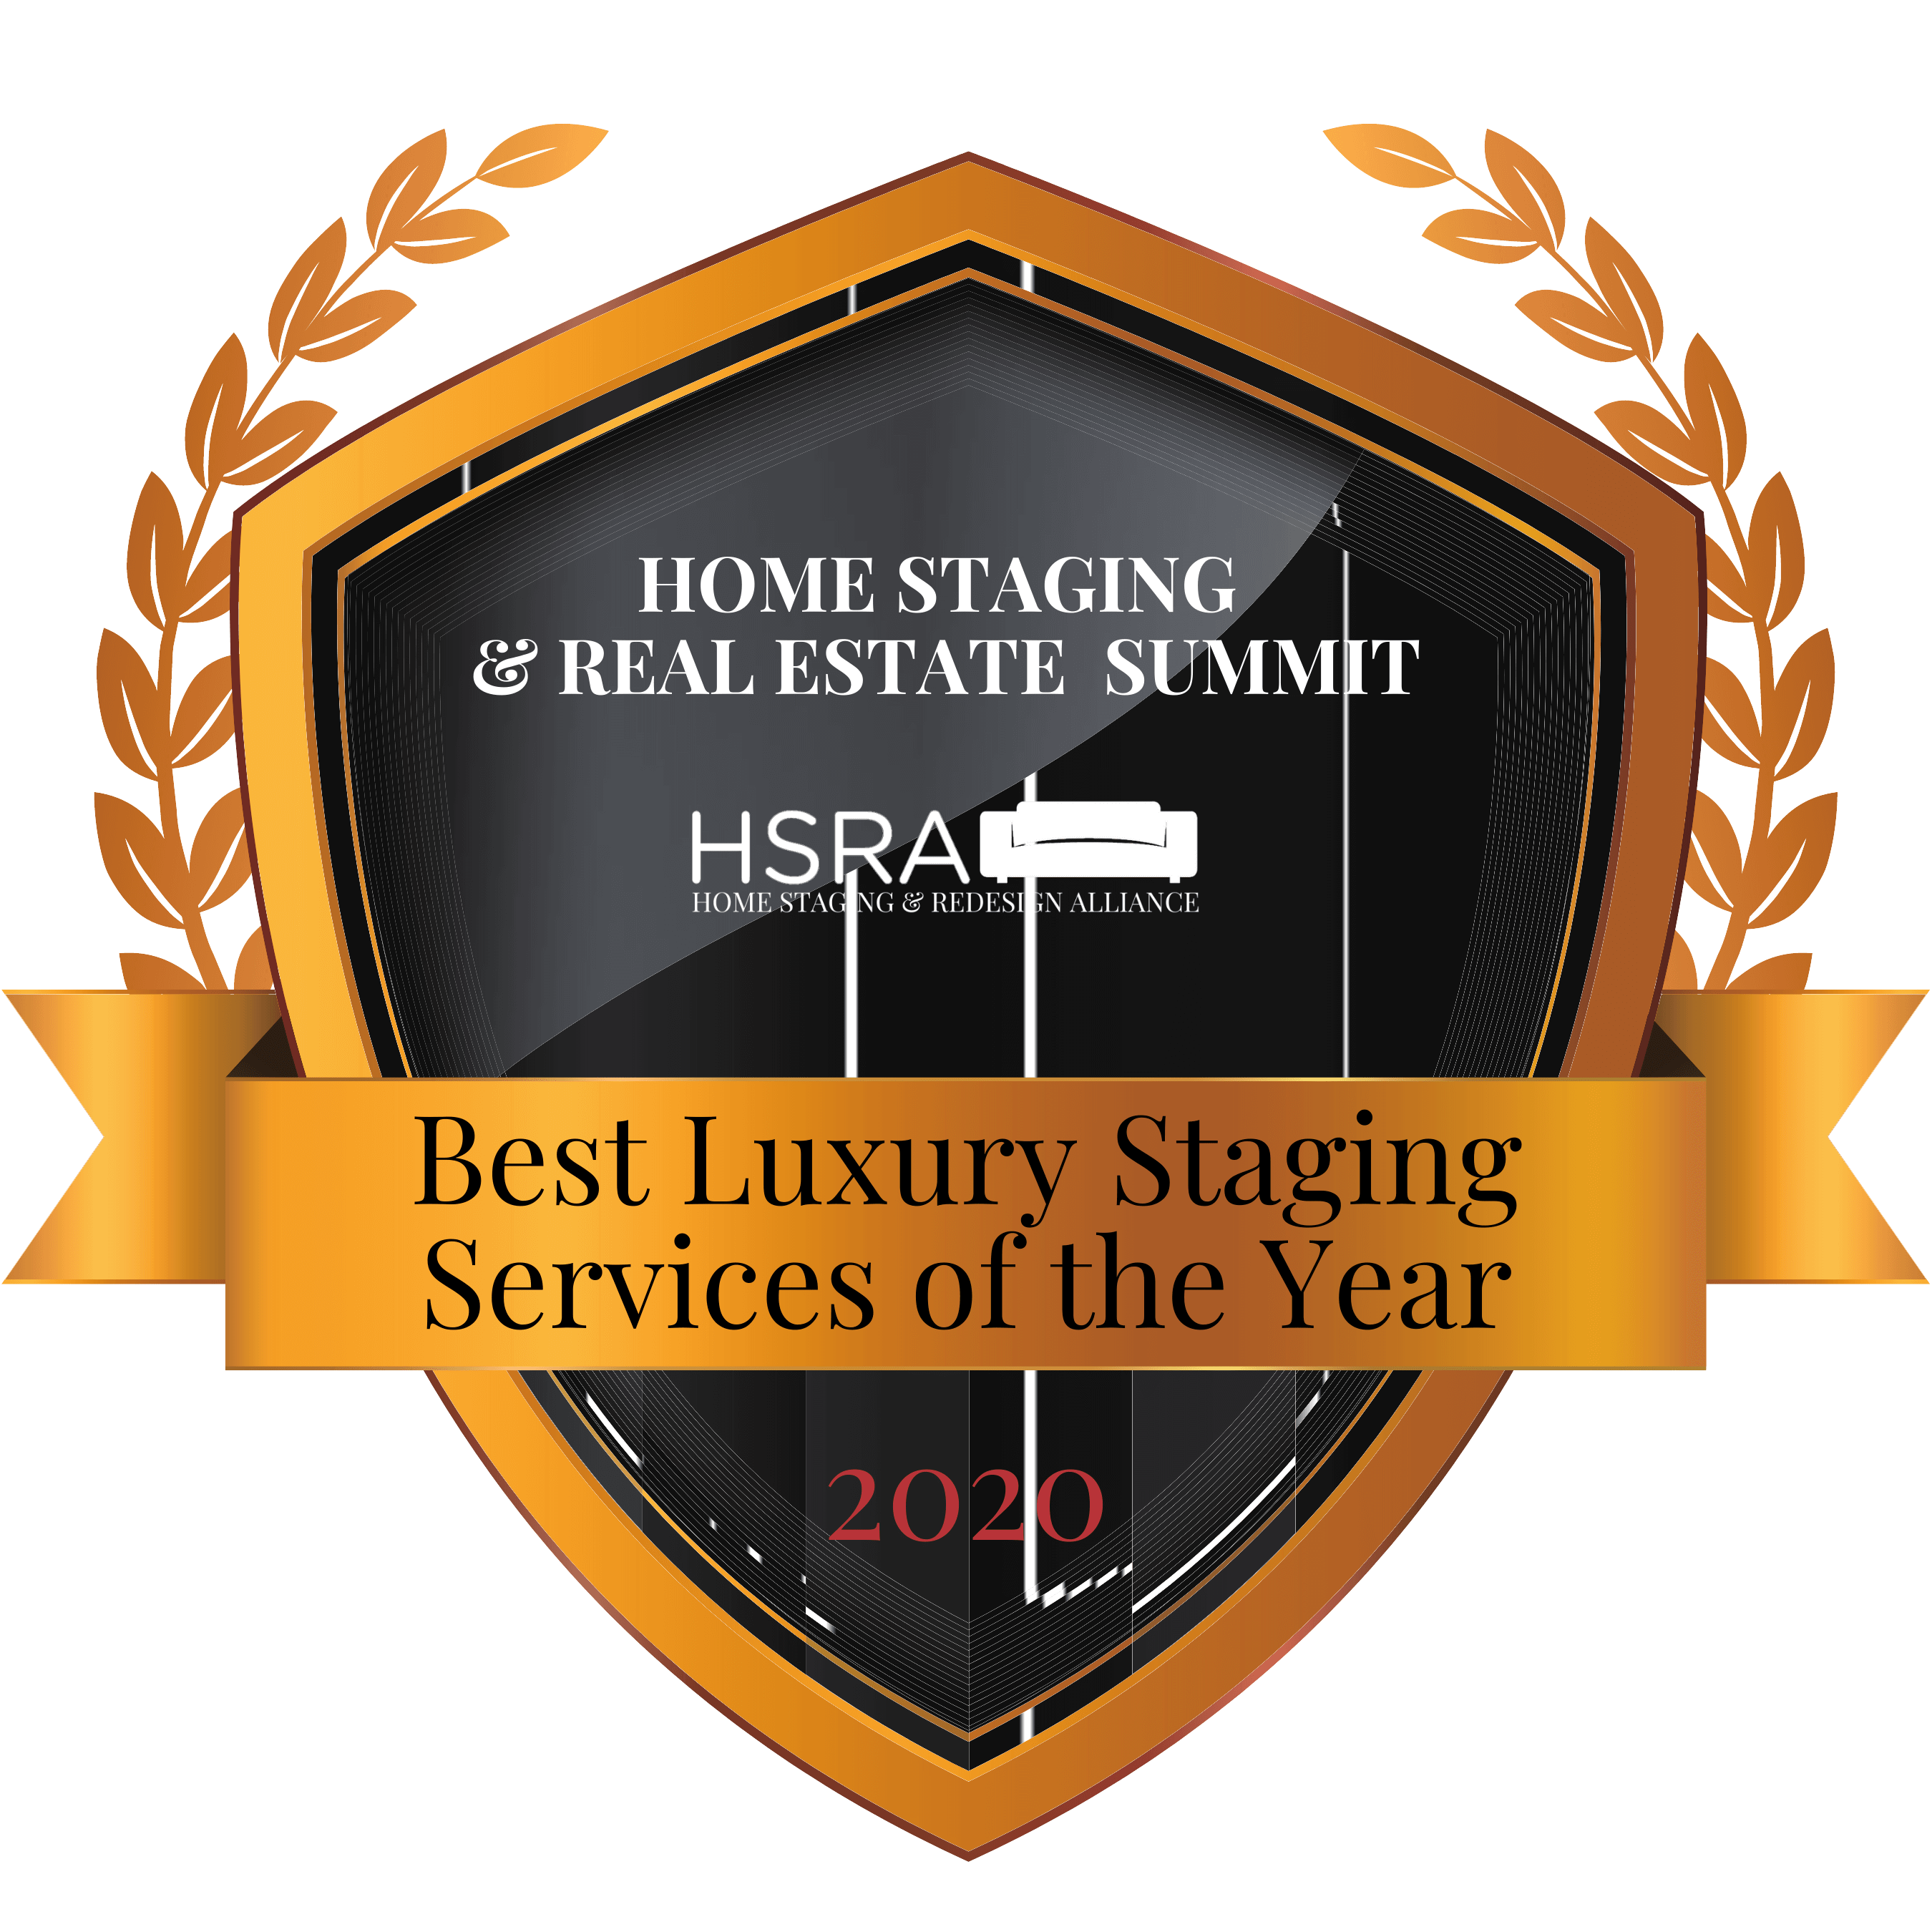 2020 HSRA Best Luxury Staging Service of the Year